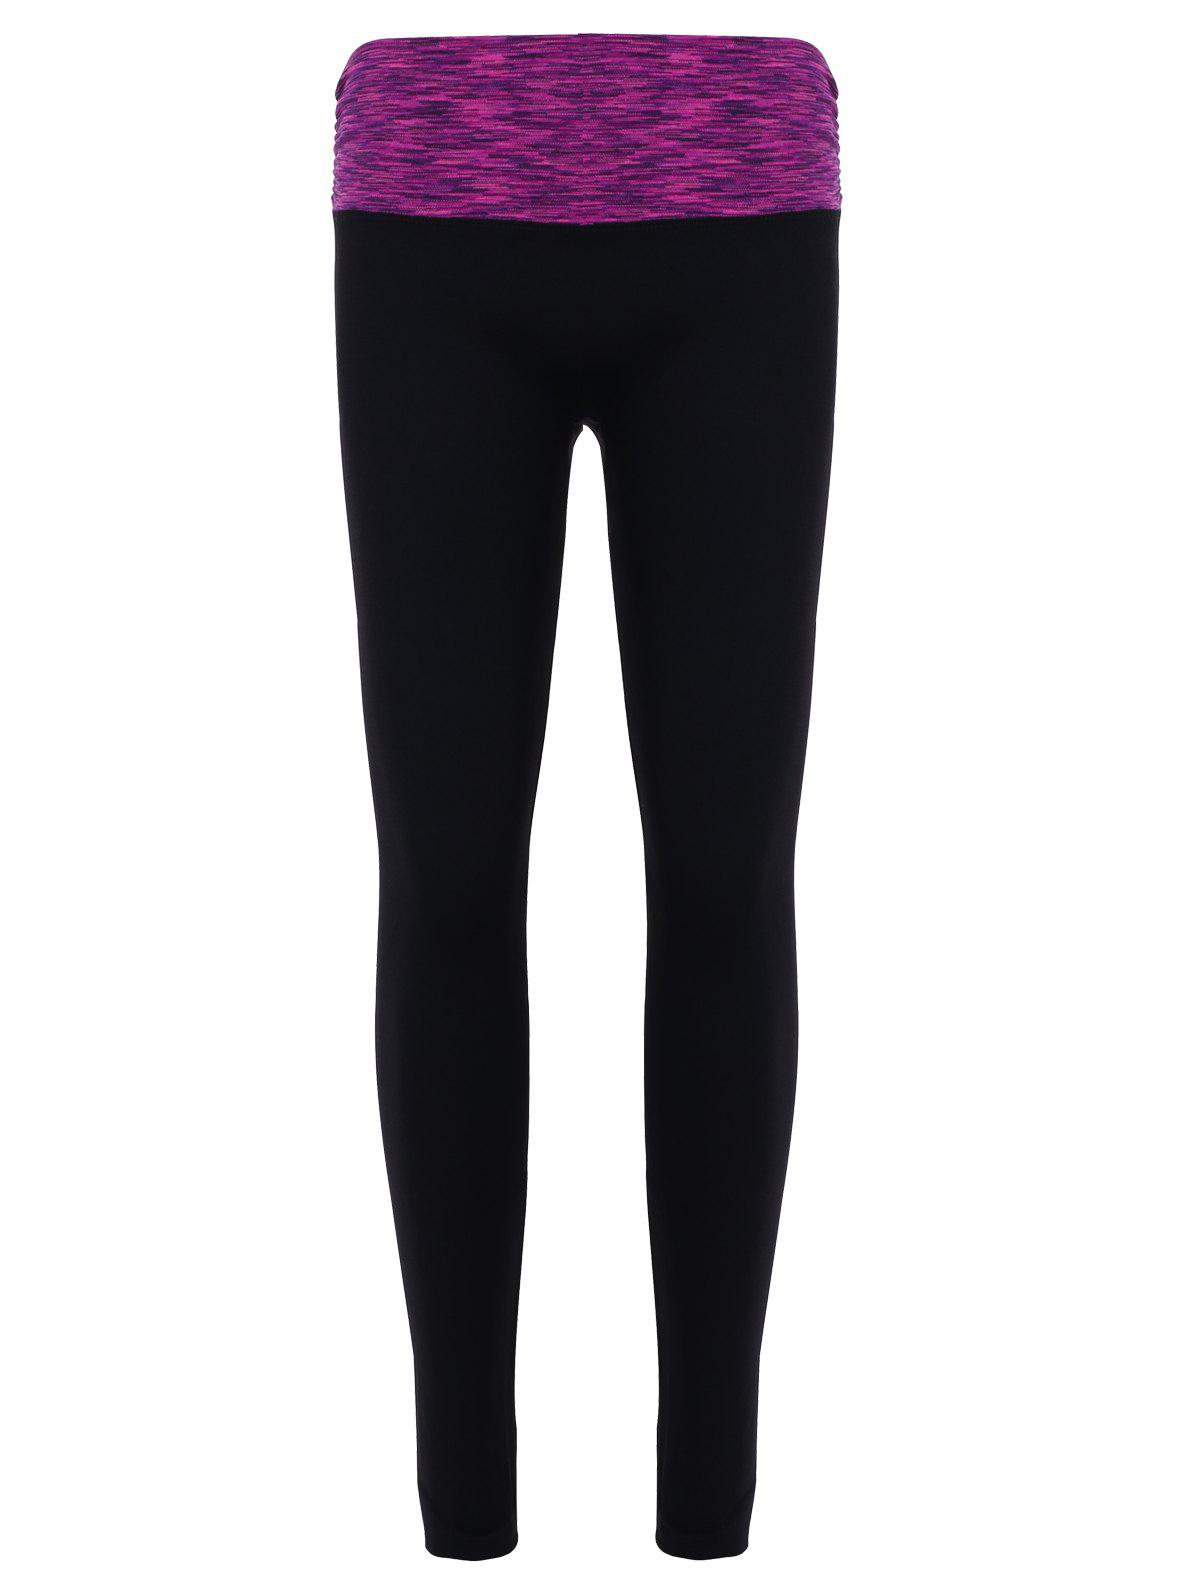 Stylish Women's High Waisted Stretchy Space Dyed Slimming Gym Leggings - VIOLET ROSE S